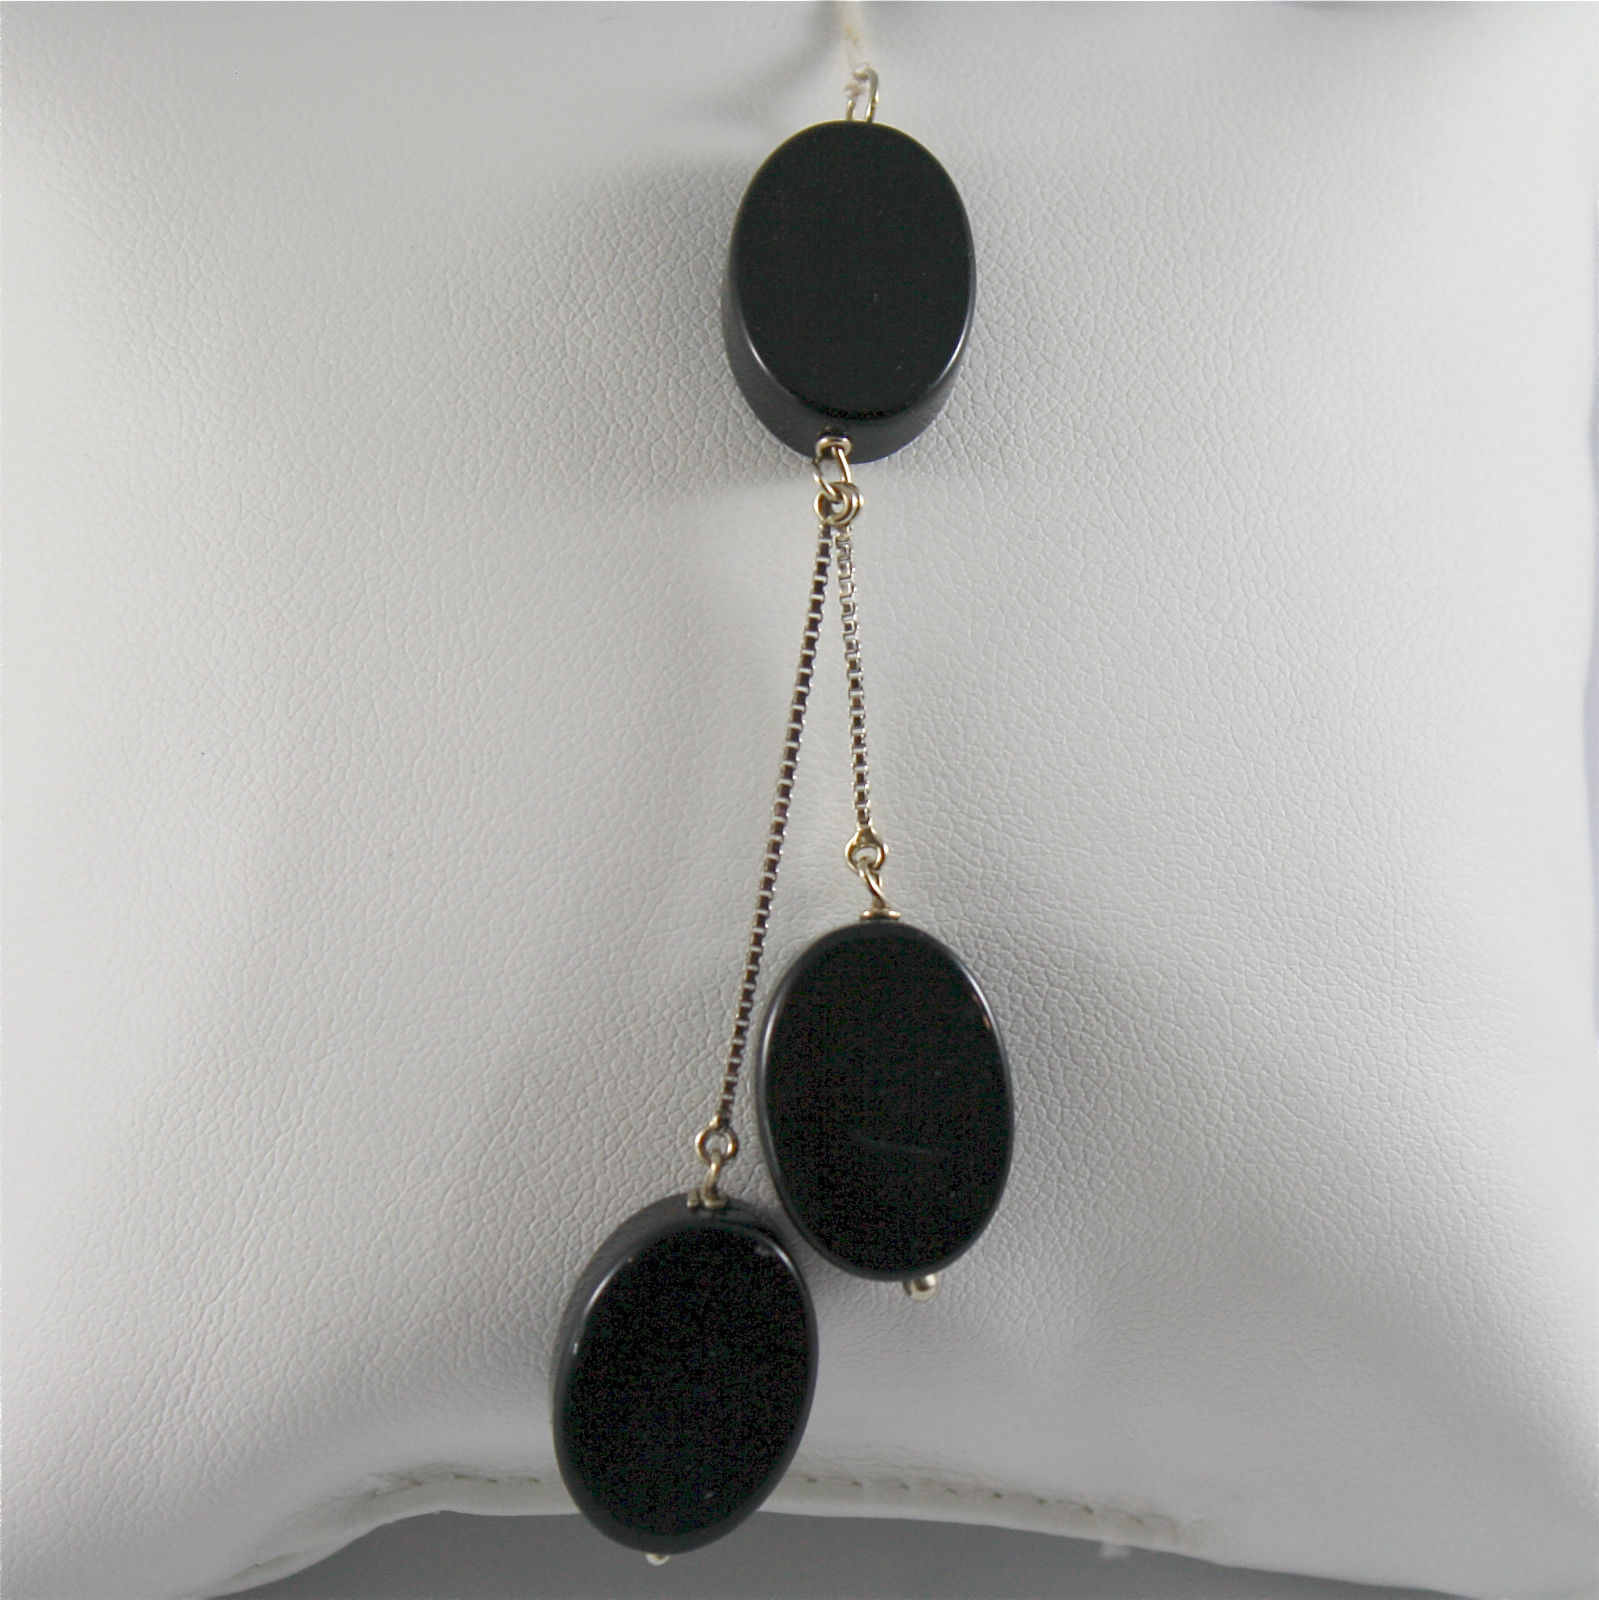 White Gold Pendant 750, 18k, three drops Oval Onyx Black, Venetian Chain